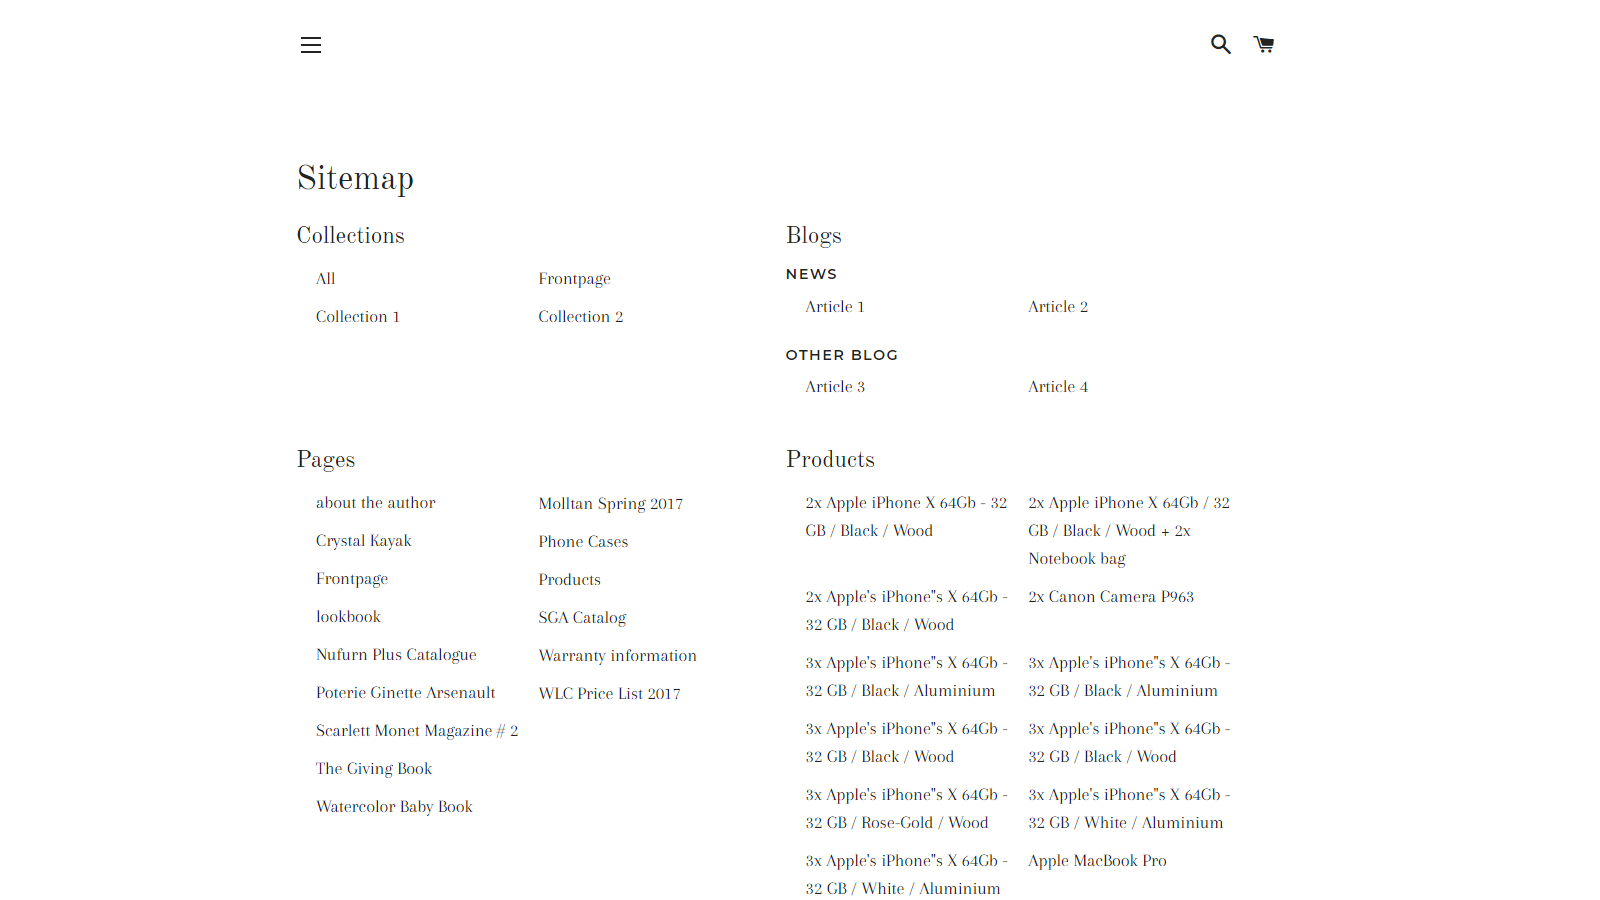 HTML sitemap view